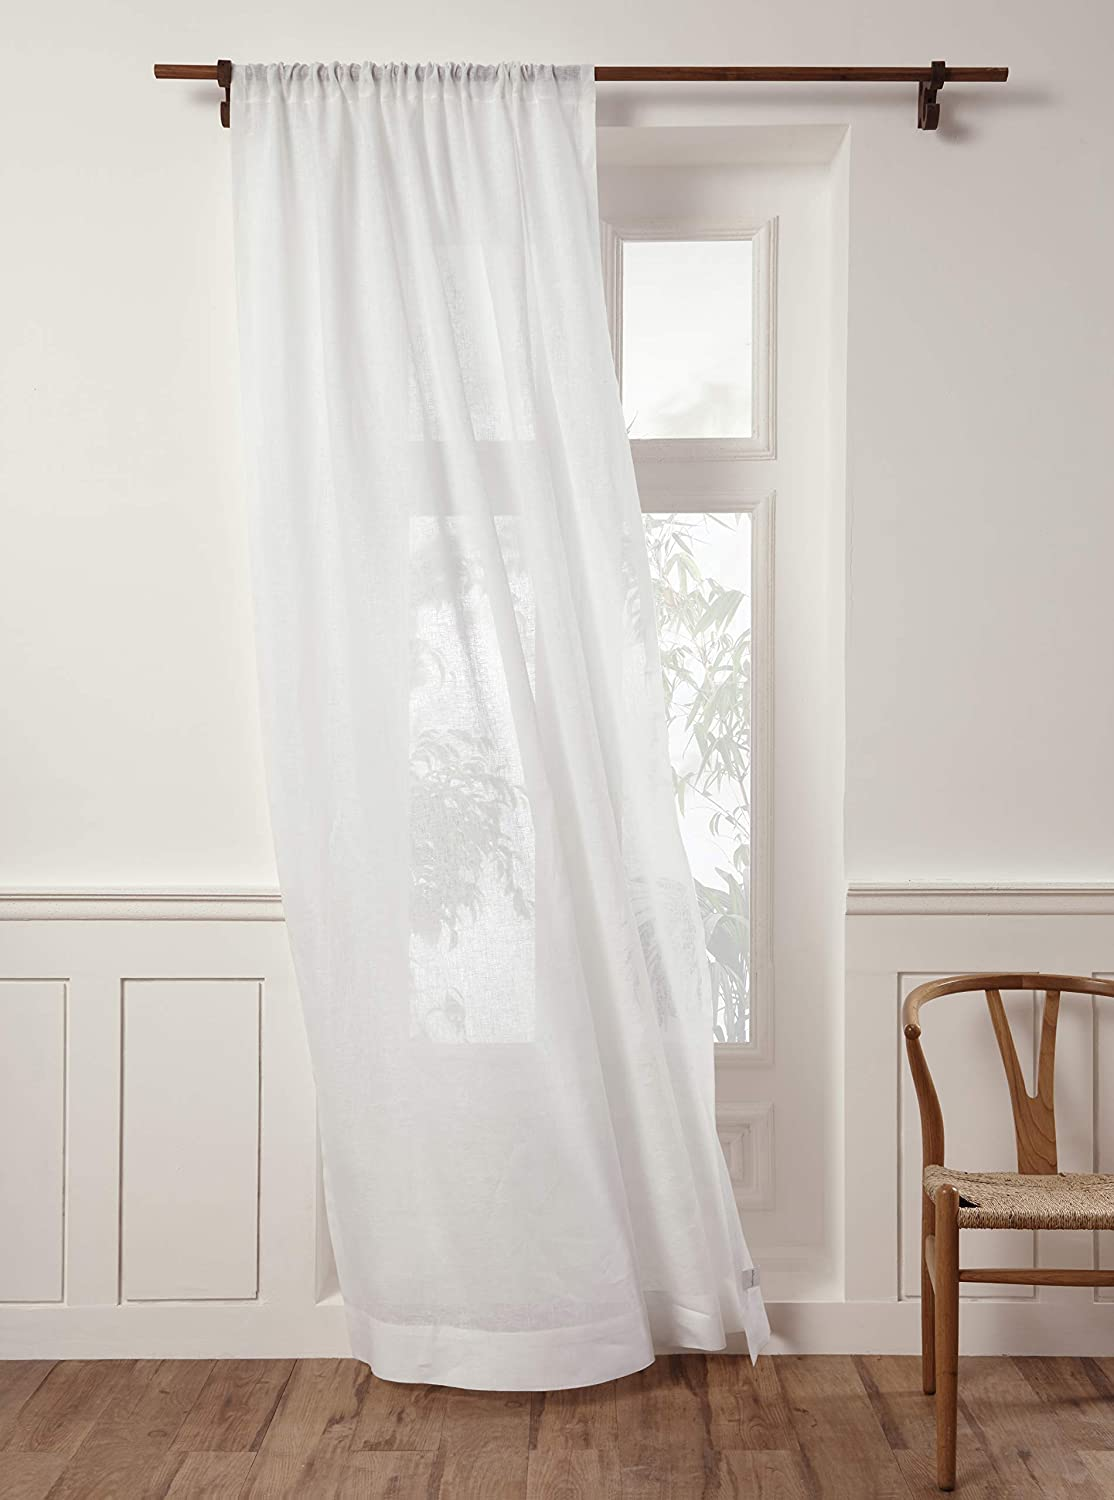 Solino Home 100% Pure Linen Sheer Curtain – 52 x 96 Inch White Rod Pocket Window Panel – Handcrafted from European Flax